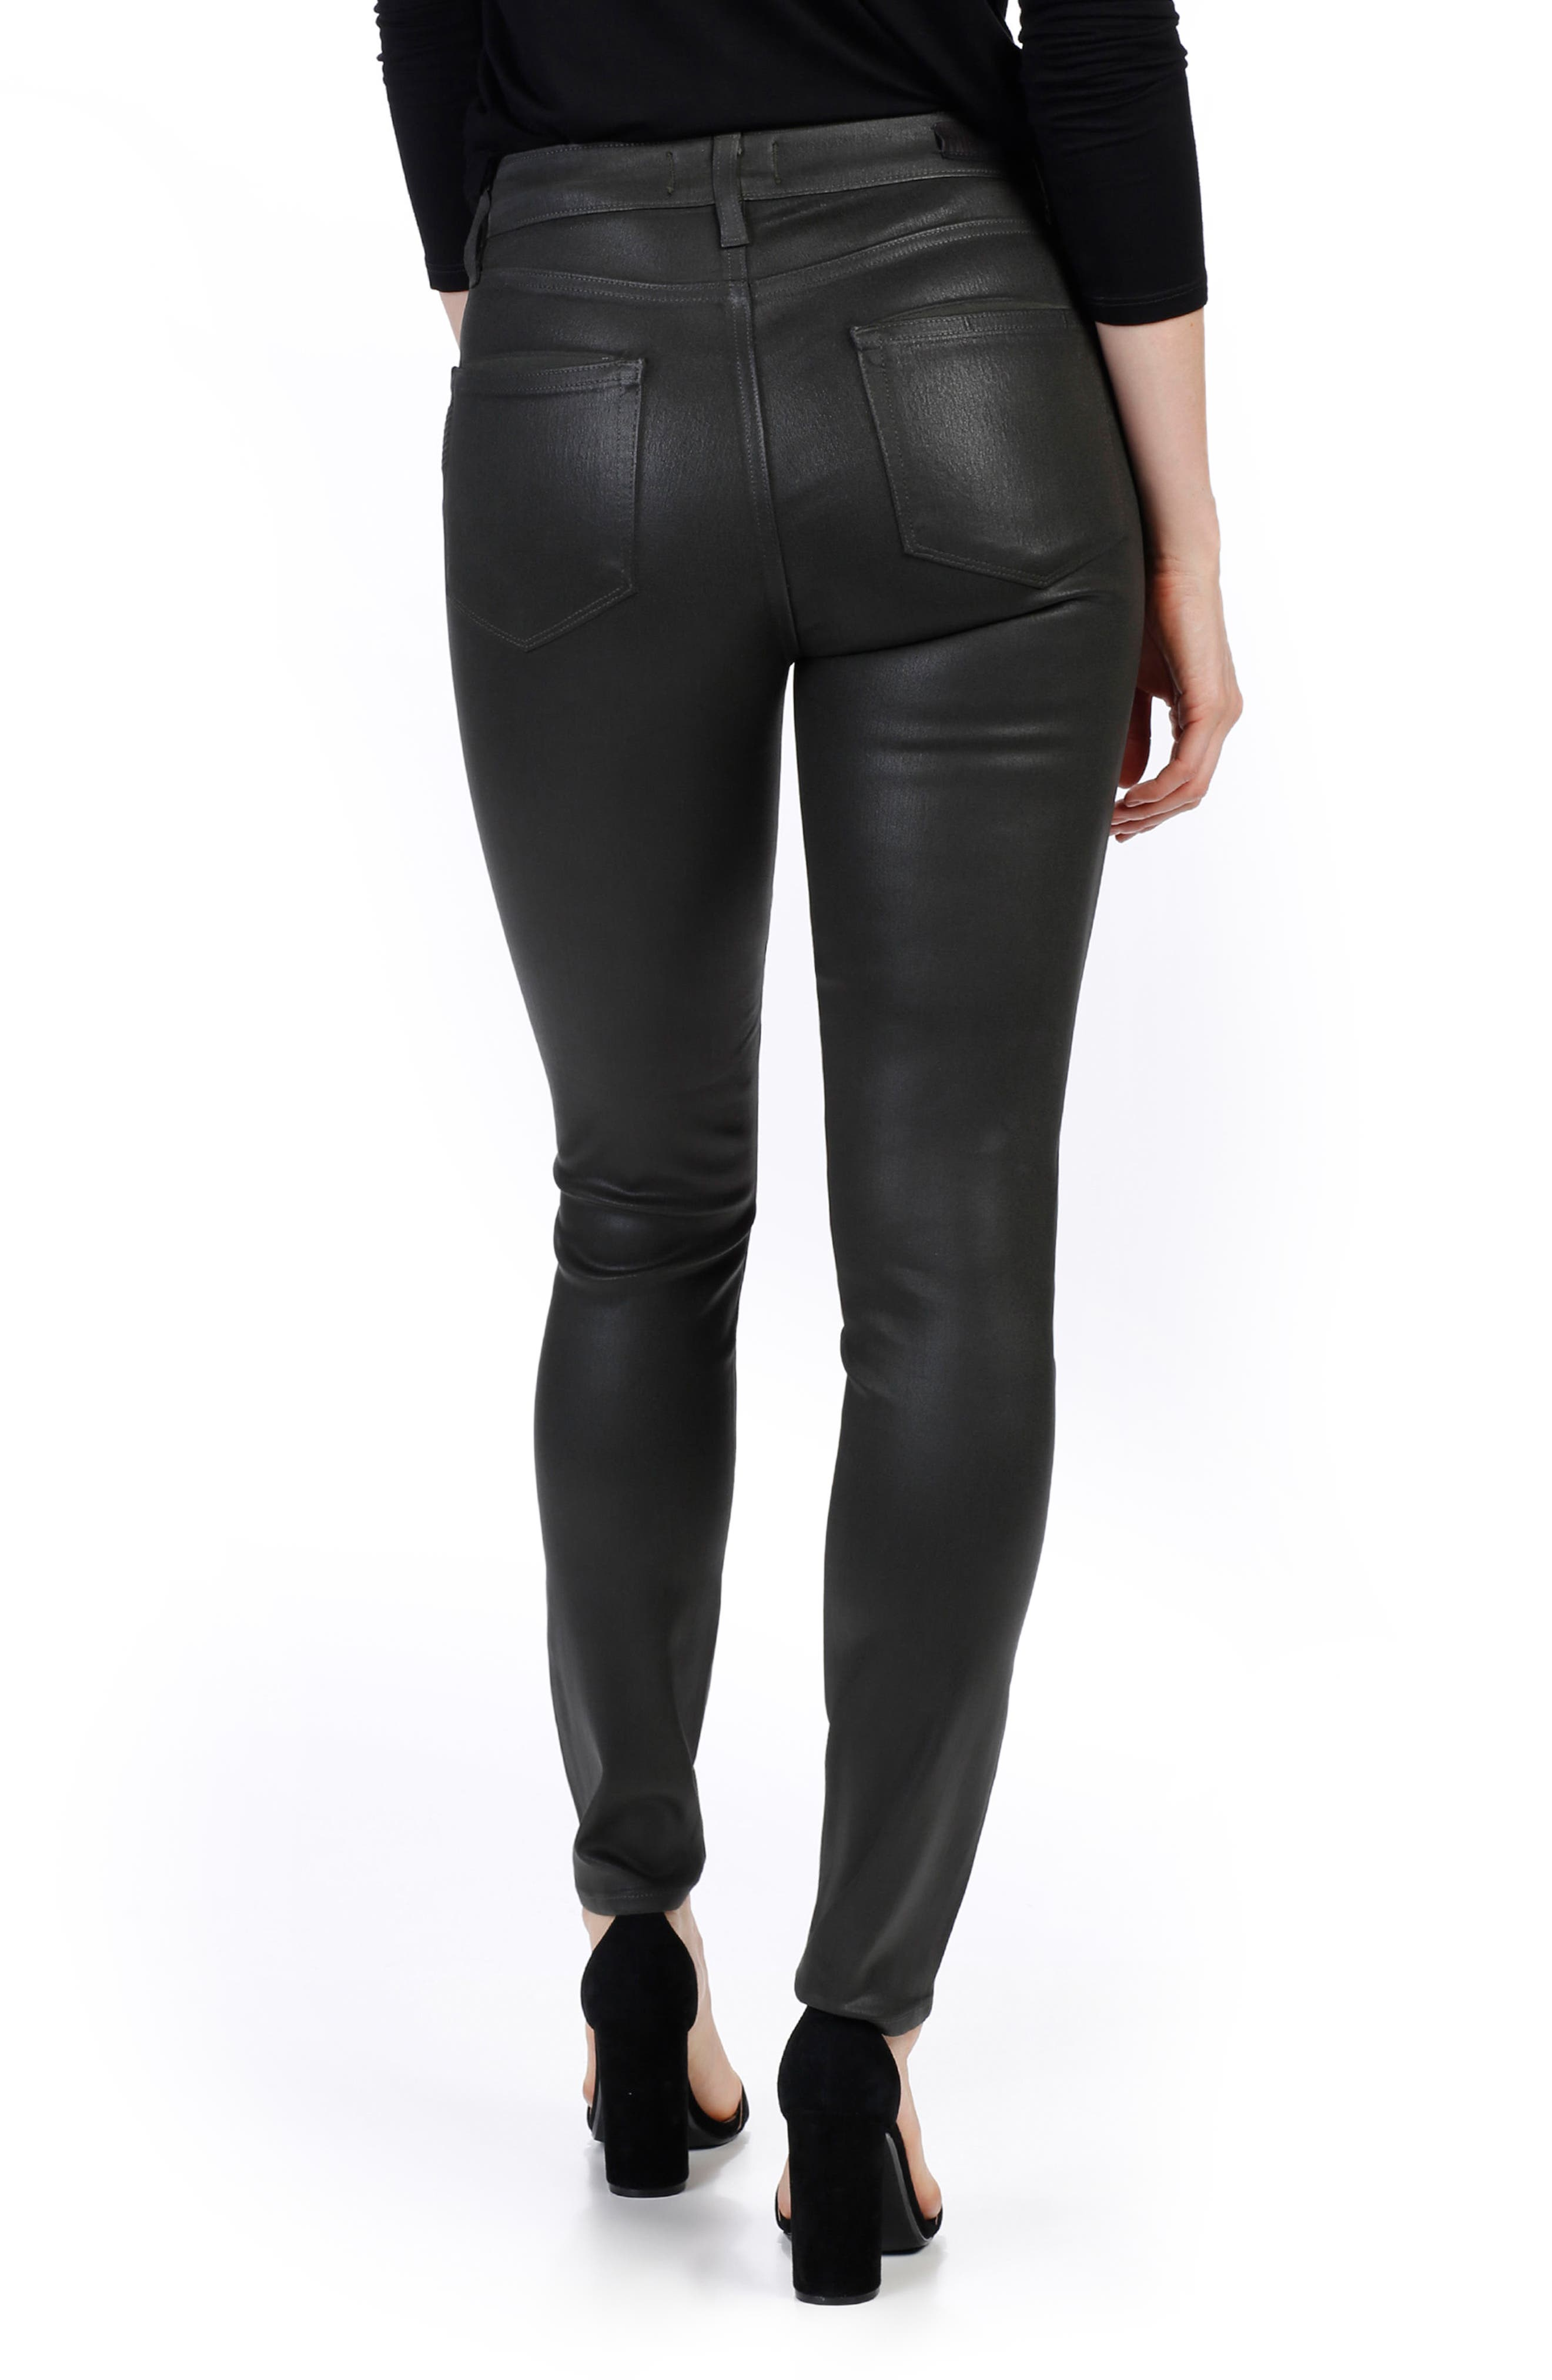 Transcend - Hoxton Coated High Waist Ankle Skinny Jeans,                             Alternate thumbnail 2, color,                             300